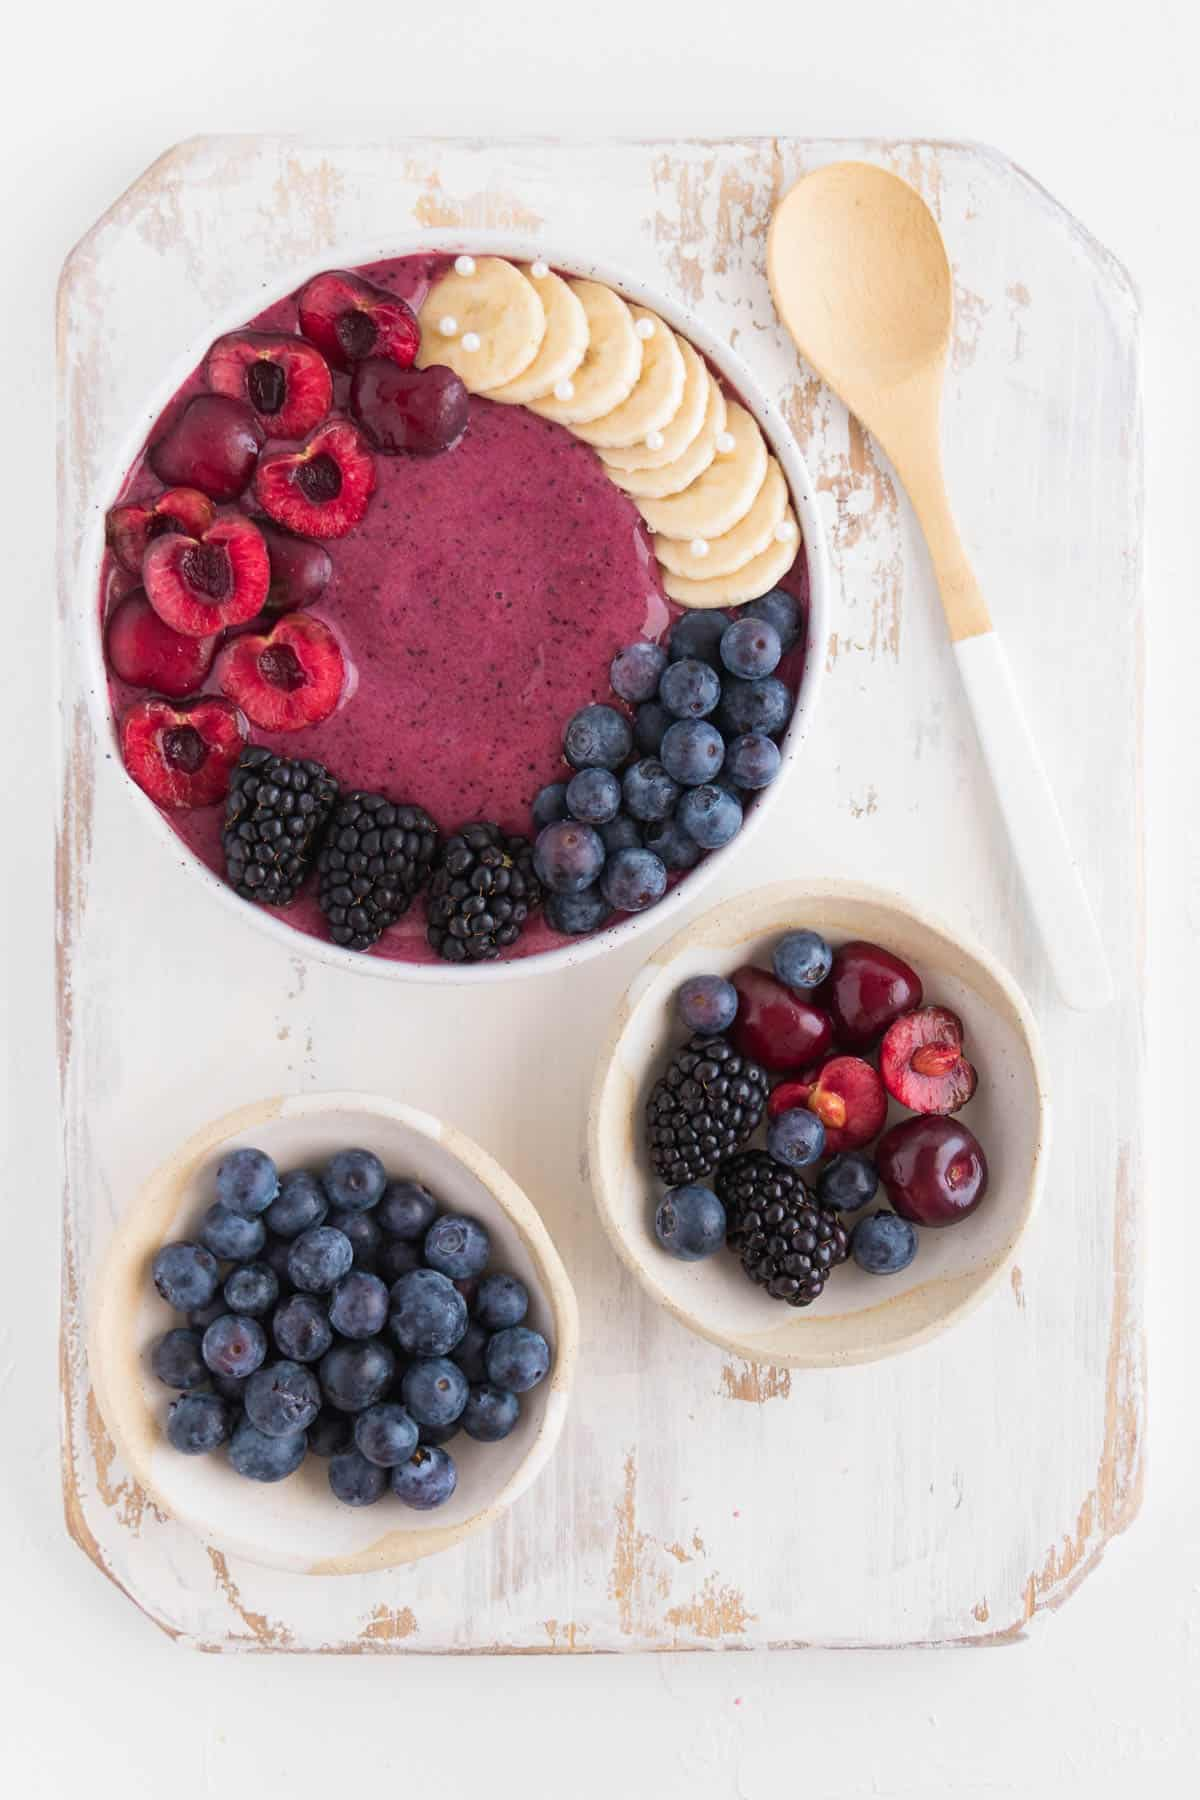 cherry smoothie bowl on top of a white distressed cutting board alongside small bowls of fruit